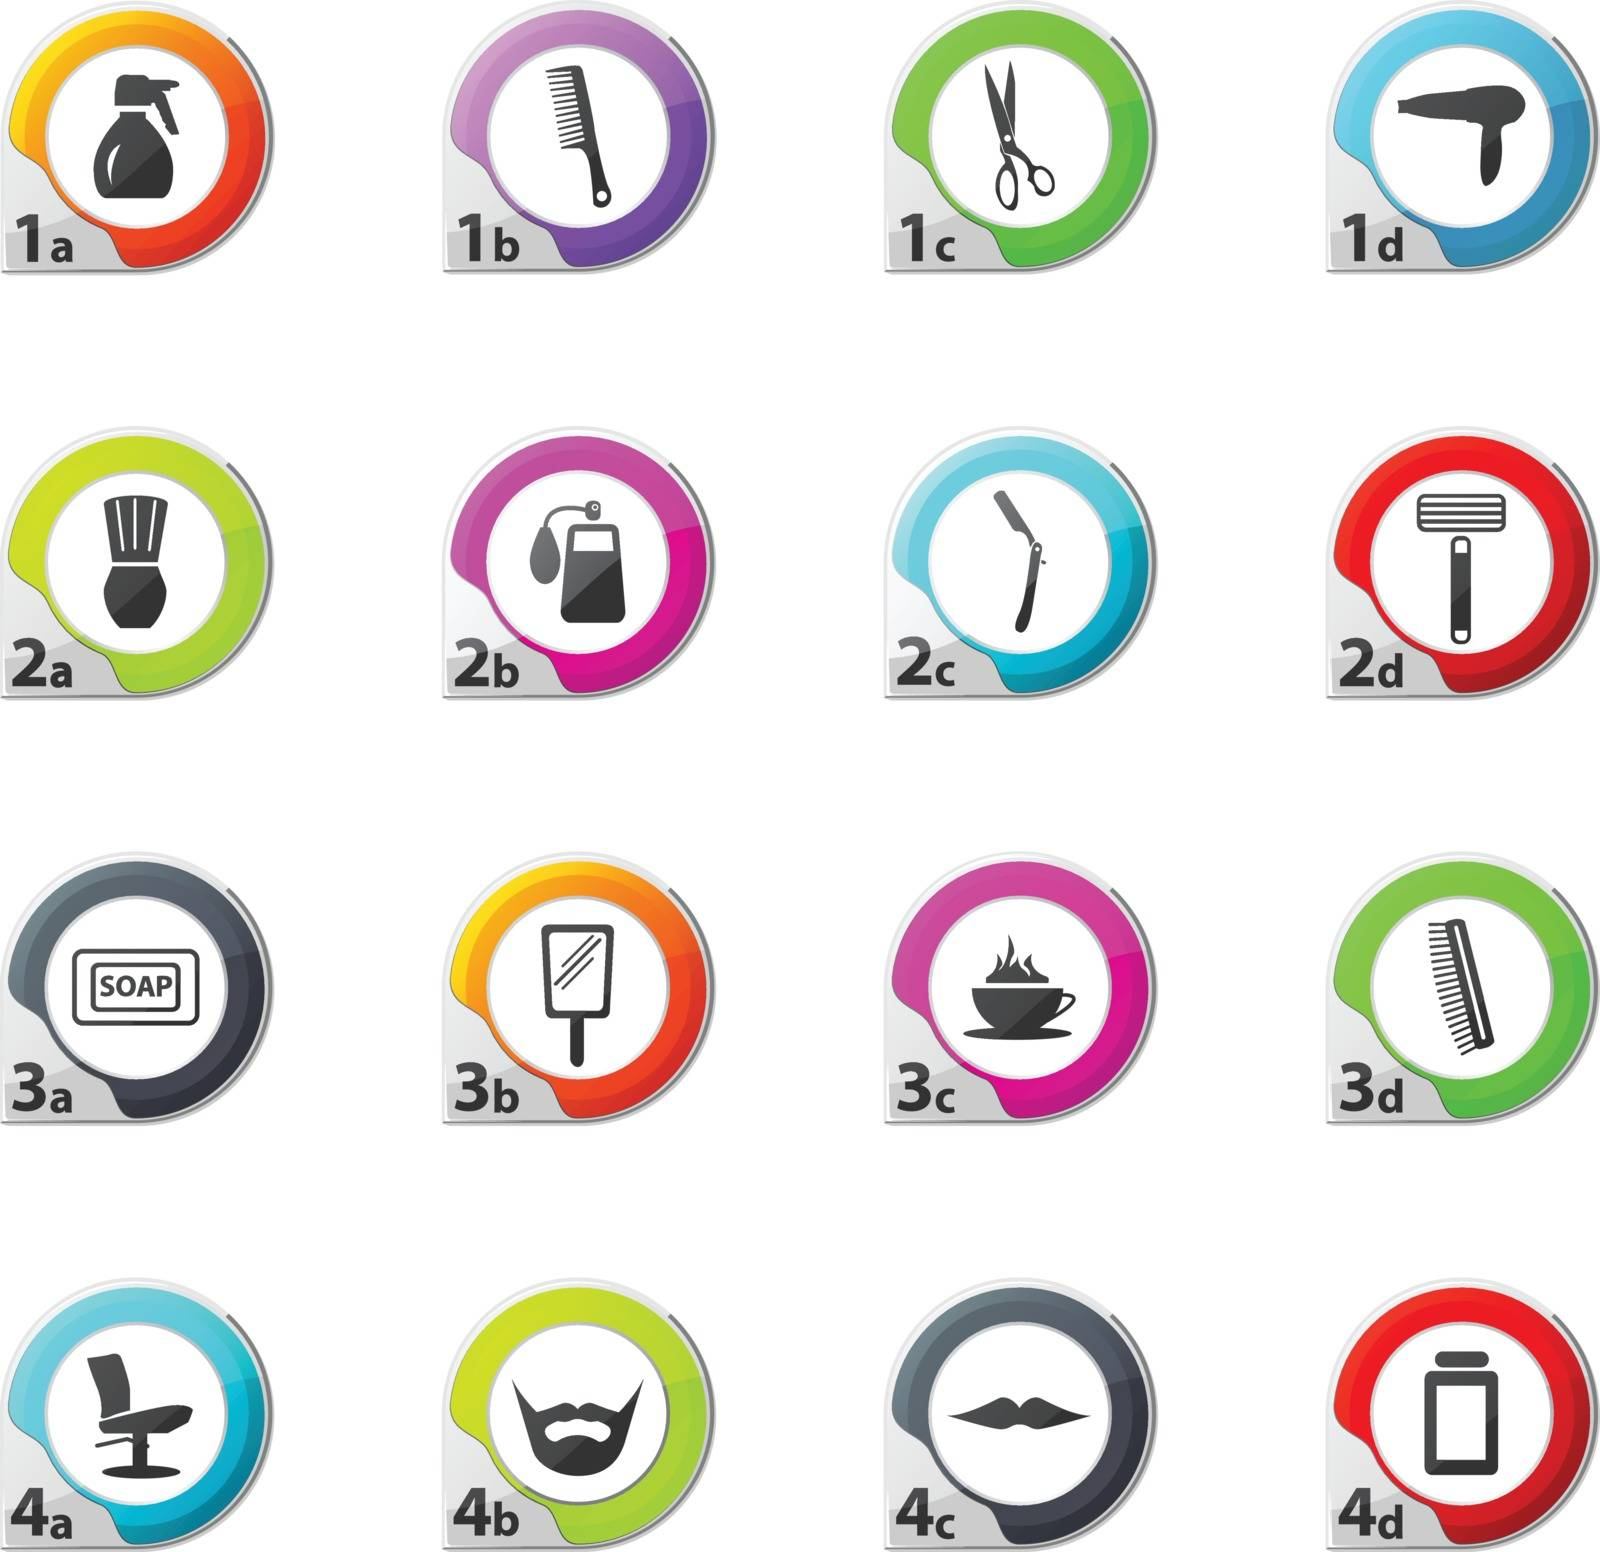 It is a set of barbershop web icons for user interface design